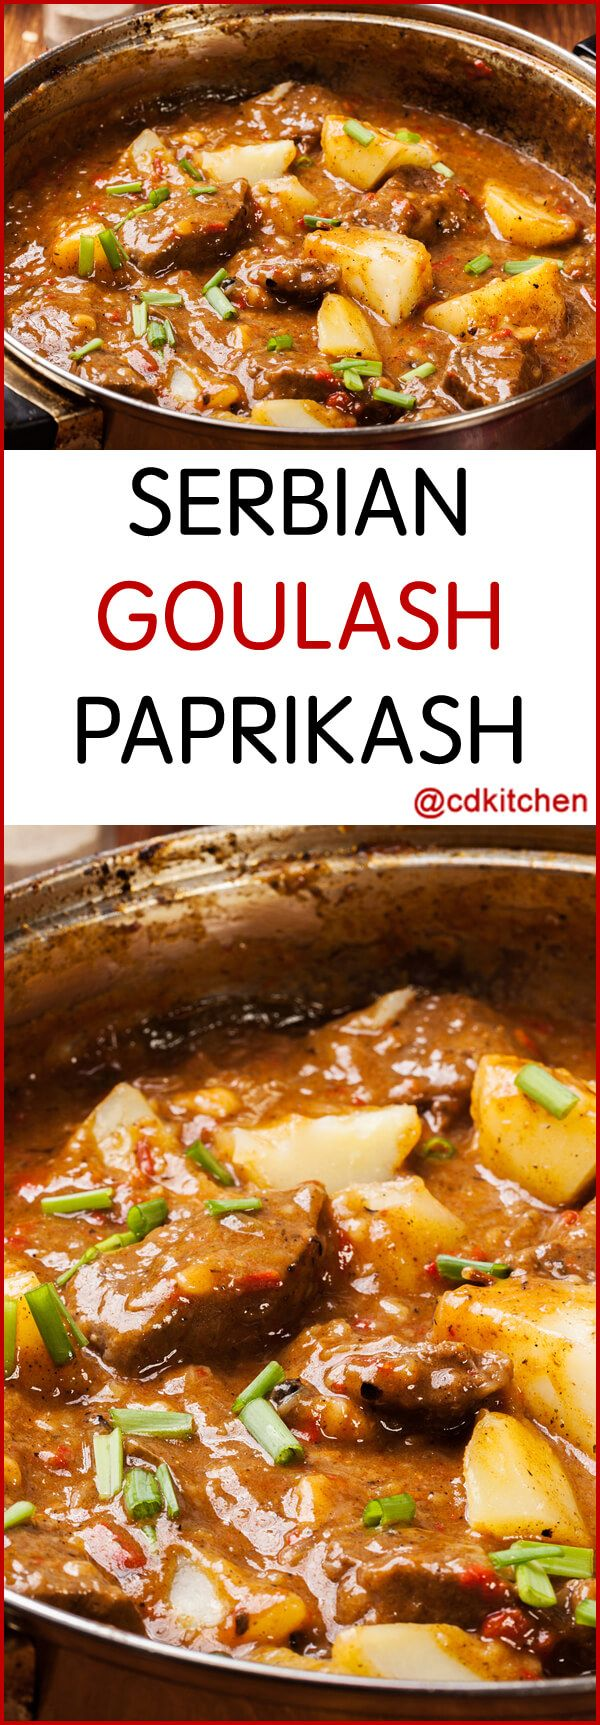 Hard to pronounce but easy to make. Enjoy the tender lamb simmered with the worldly spice of paprika and hearty potatoes. Add a red chili to make this  southeastern European soup shine.    CDKitchen.com